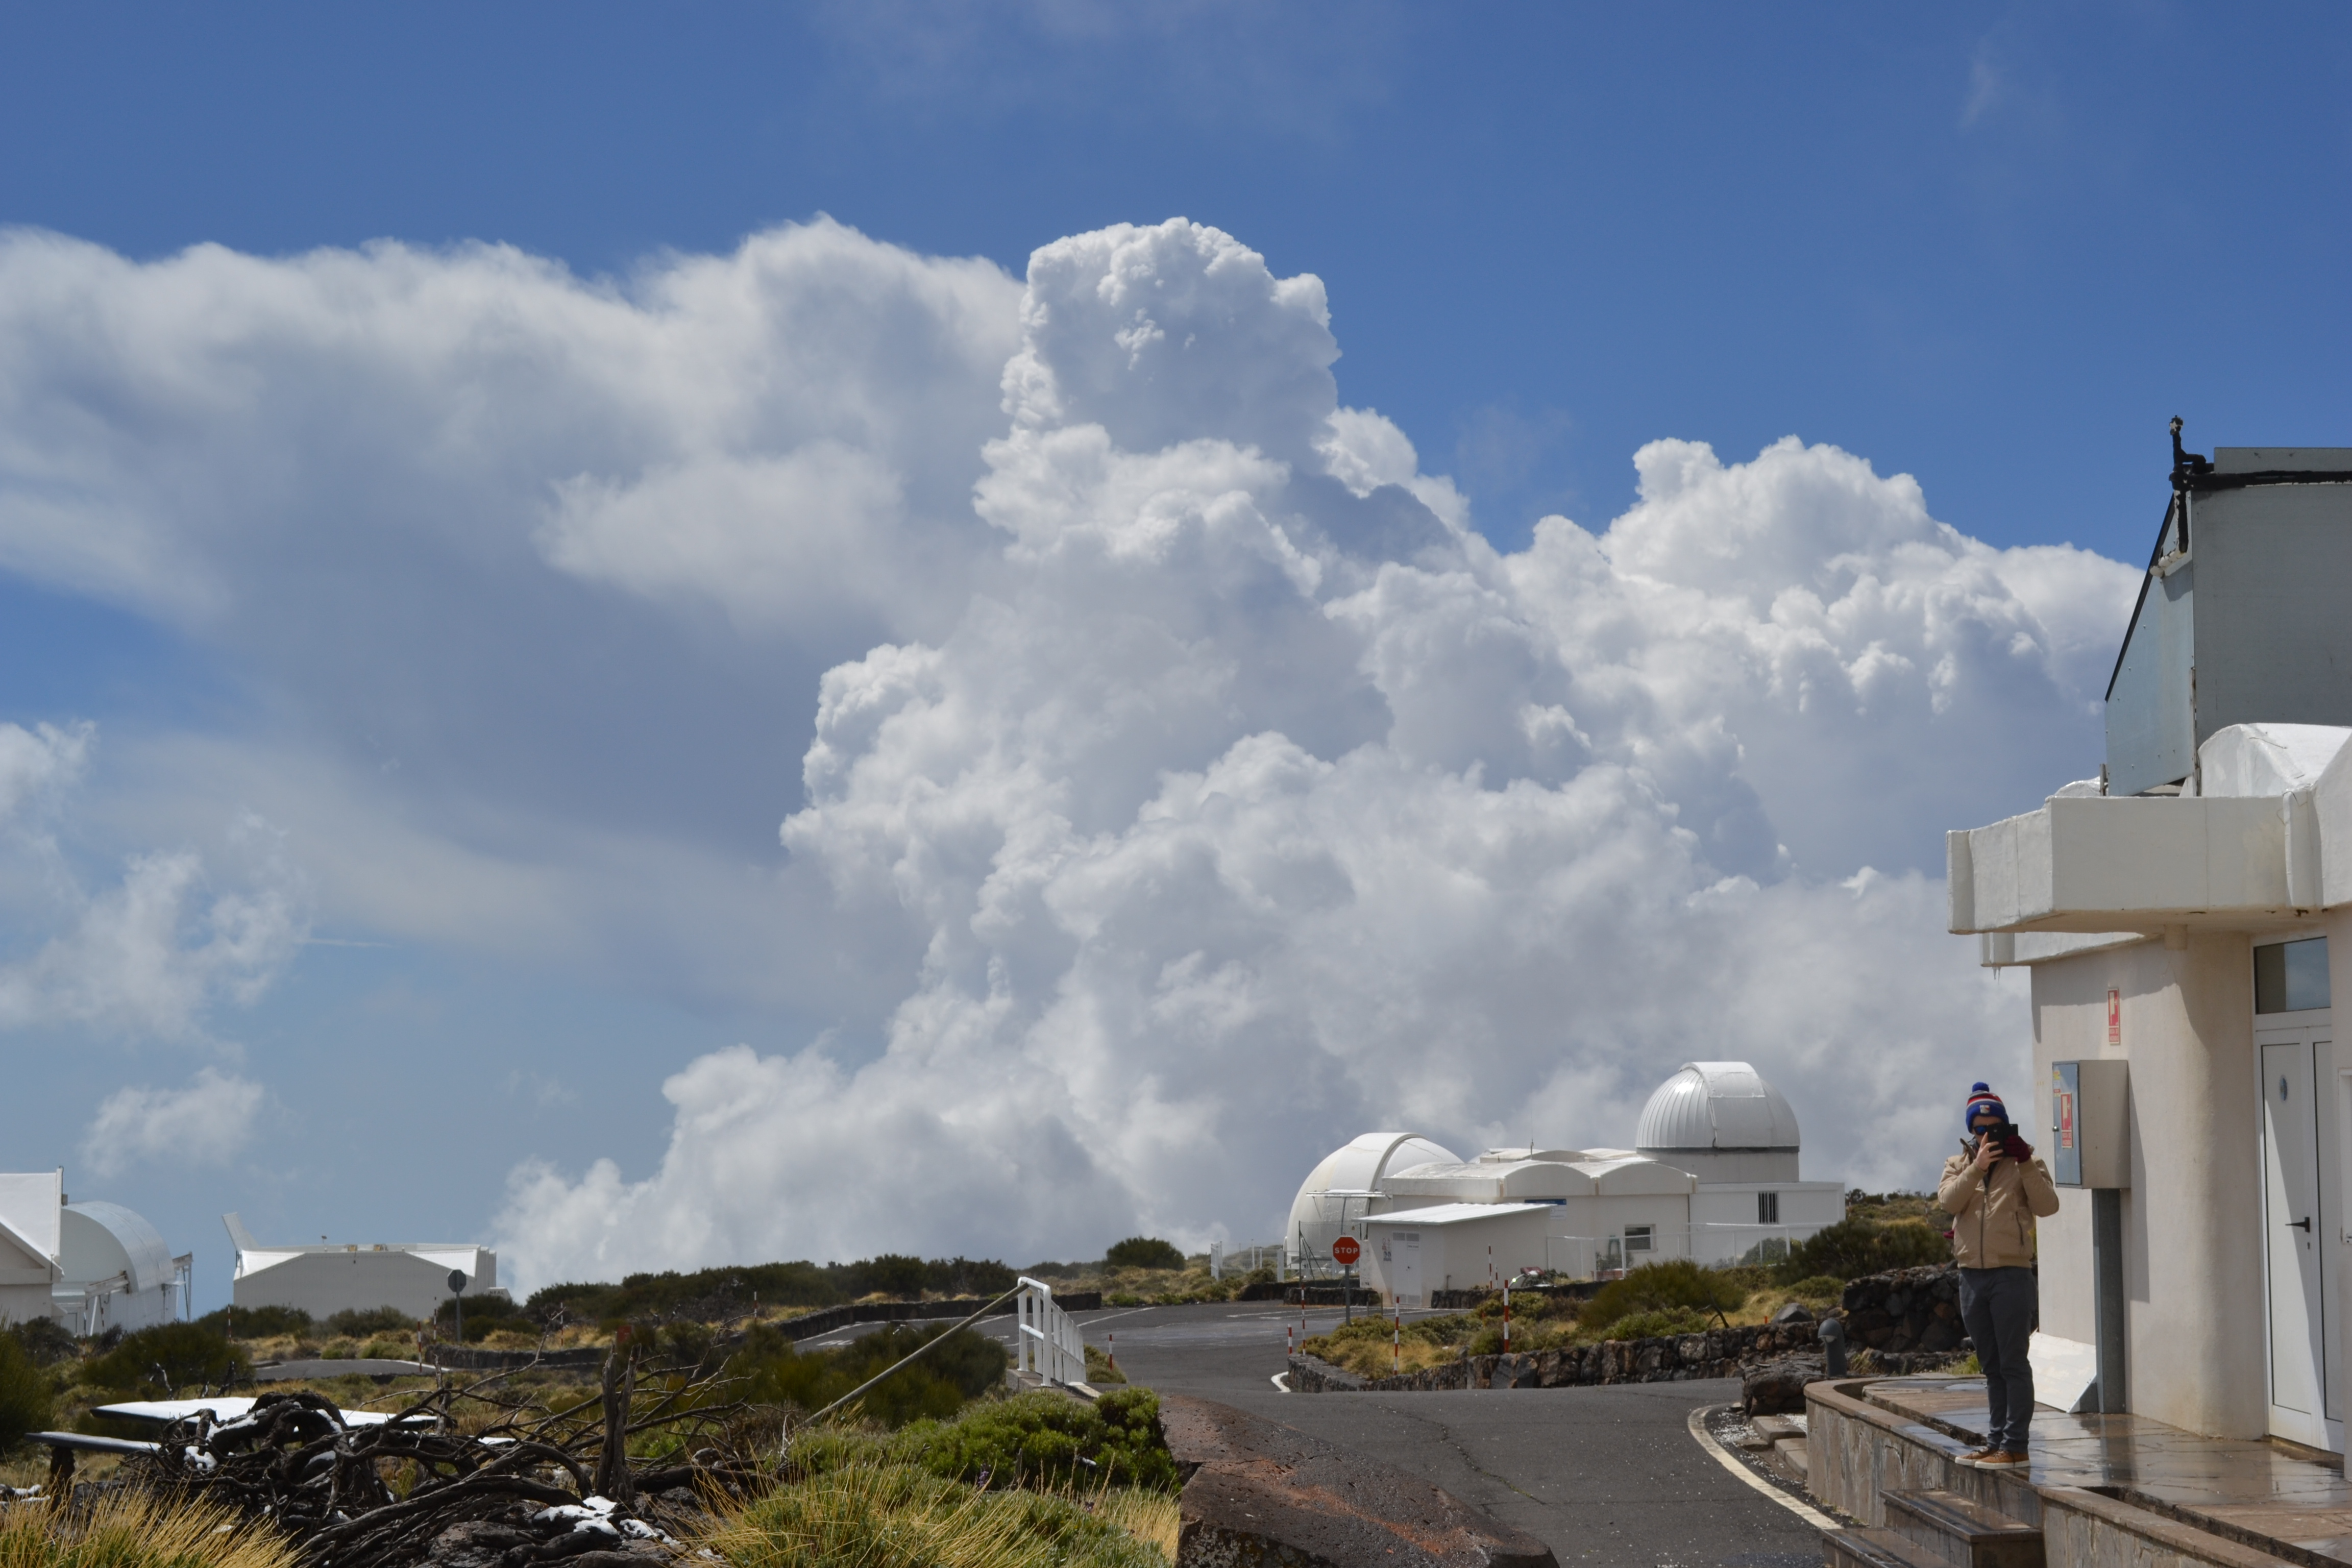 Astronomy Field Trip: We were literally in the clouds – surrounded by all of these amazing telescopes!